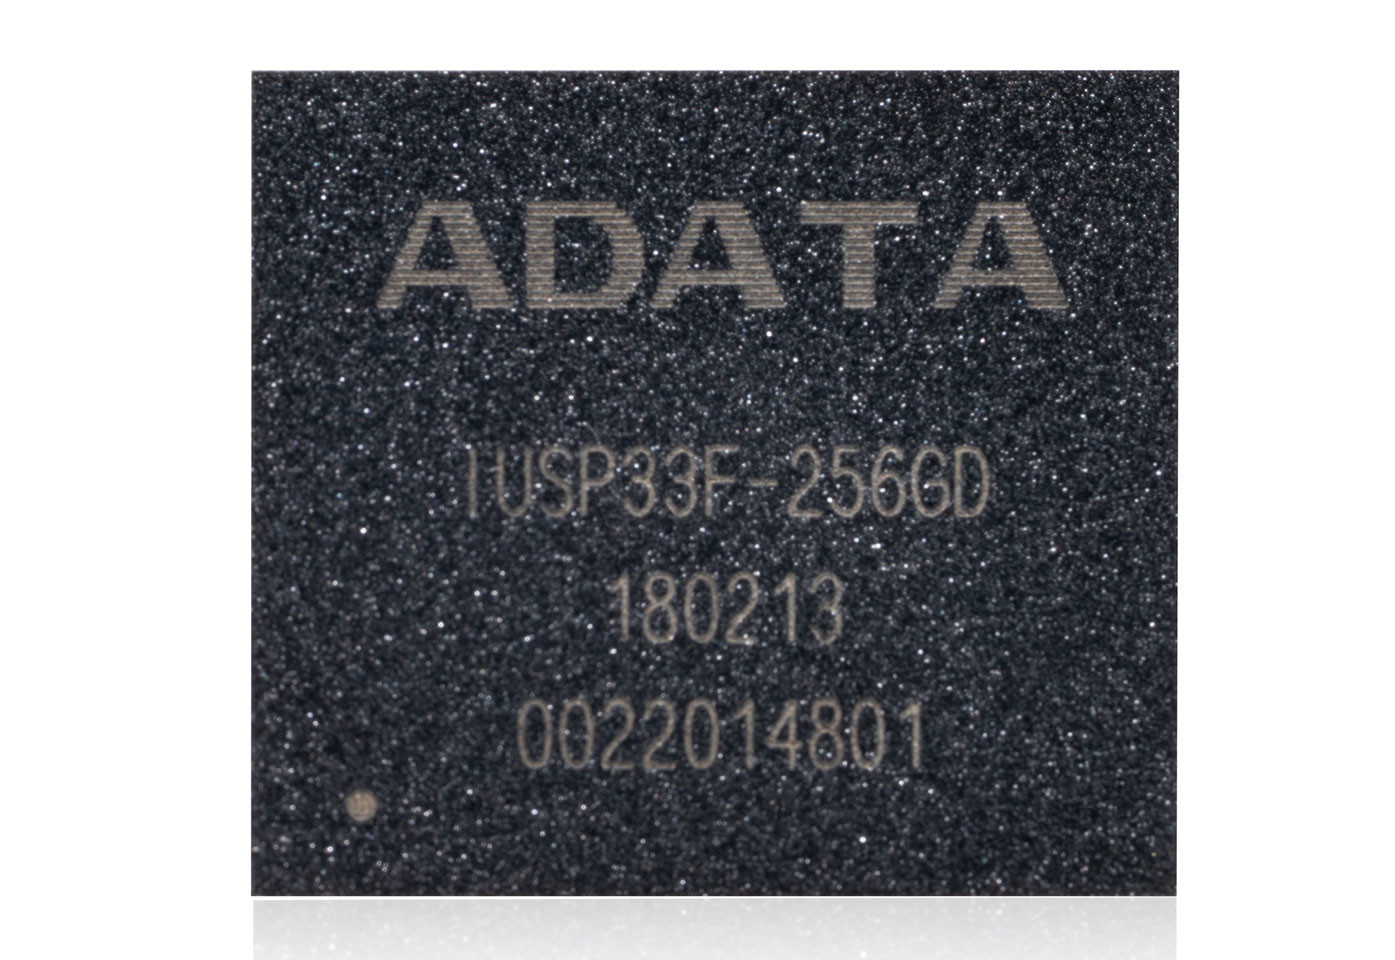 Image result for ADATA releases IUSP33F PCIe ball grid array (BGA)